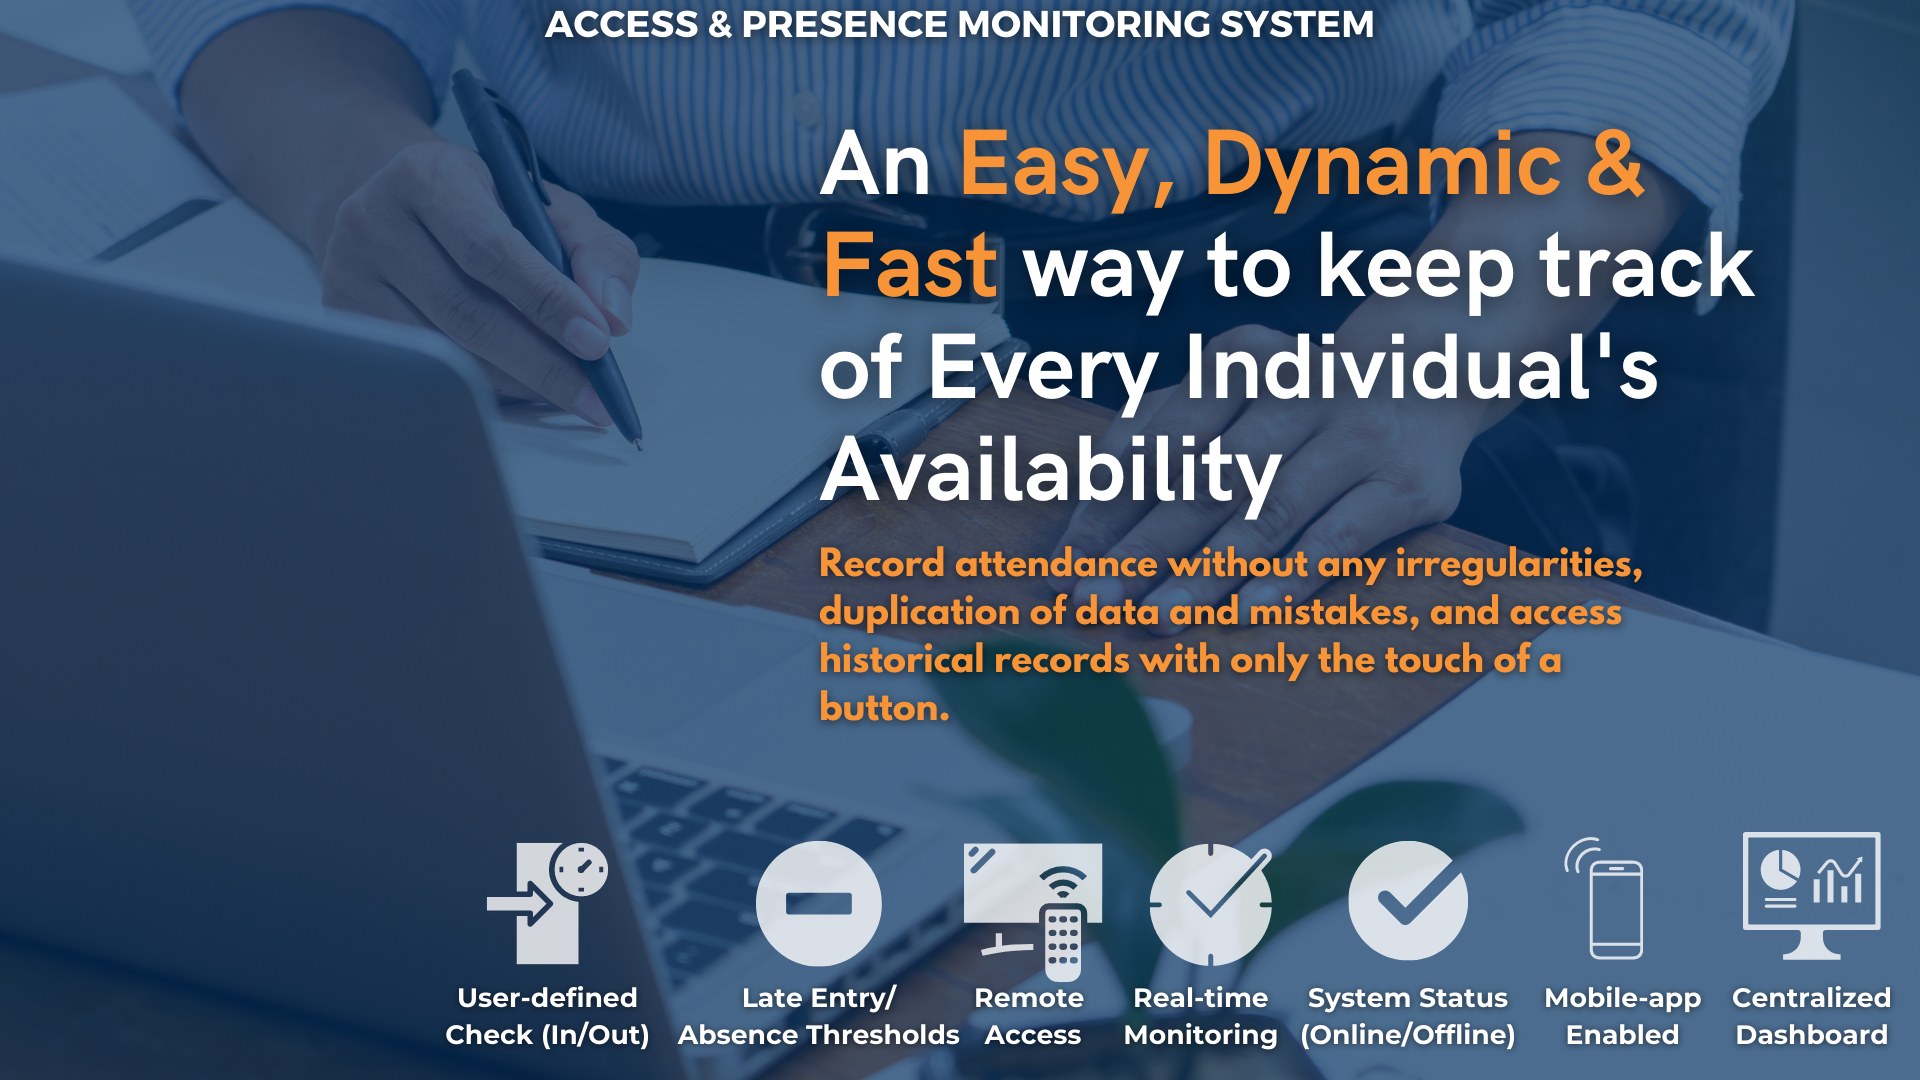 Access & Presence Monitoring System 2